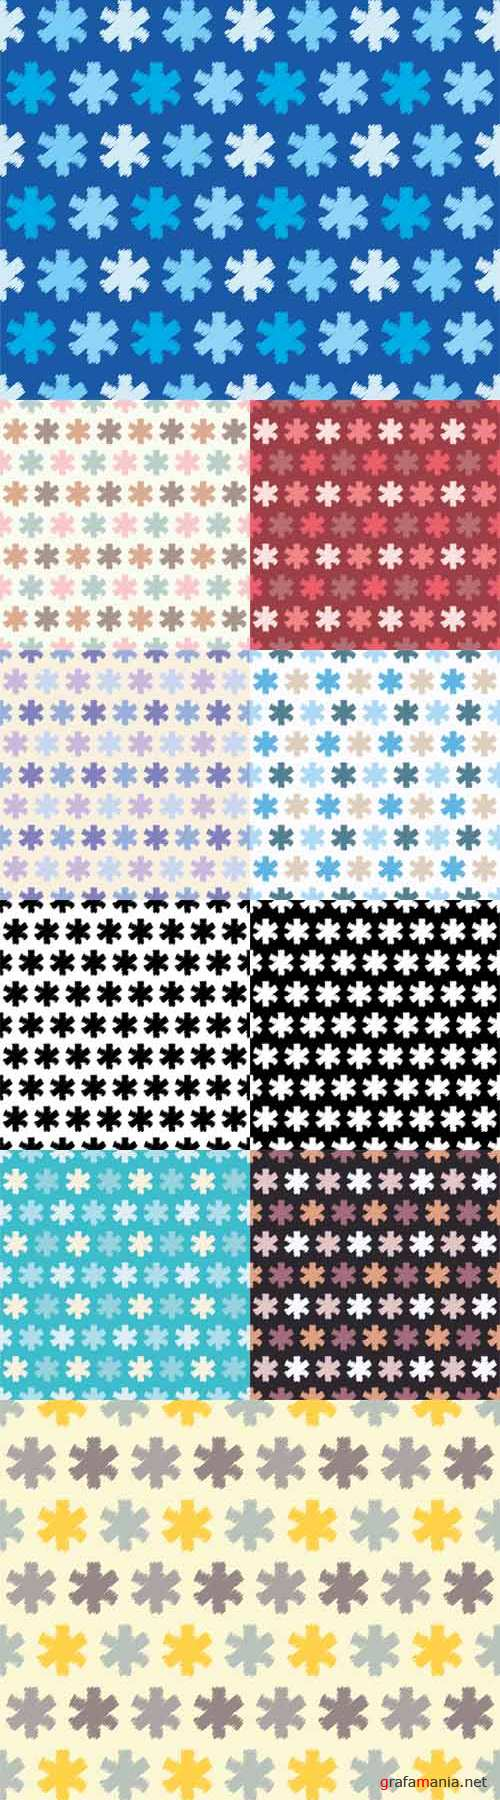 Vector Seamless background with snowflakes. Print. Repeating background